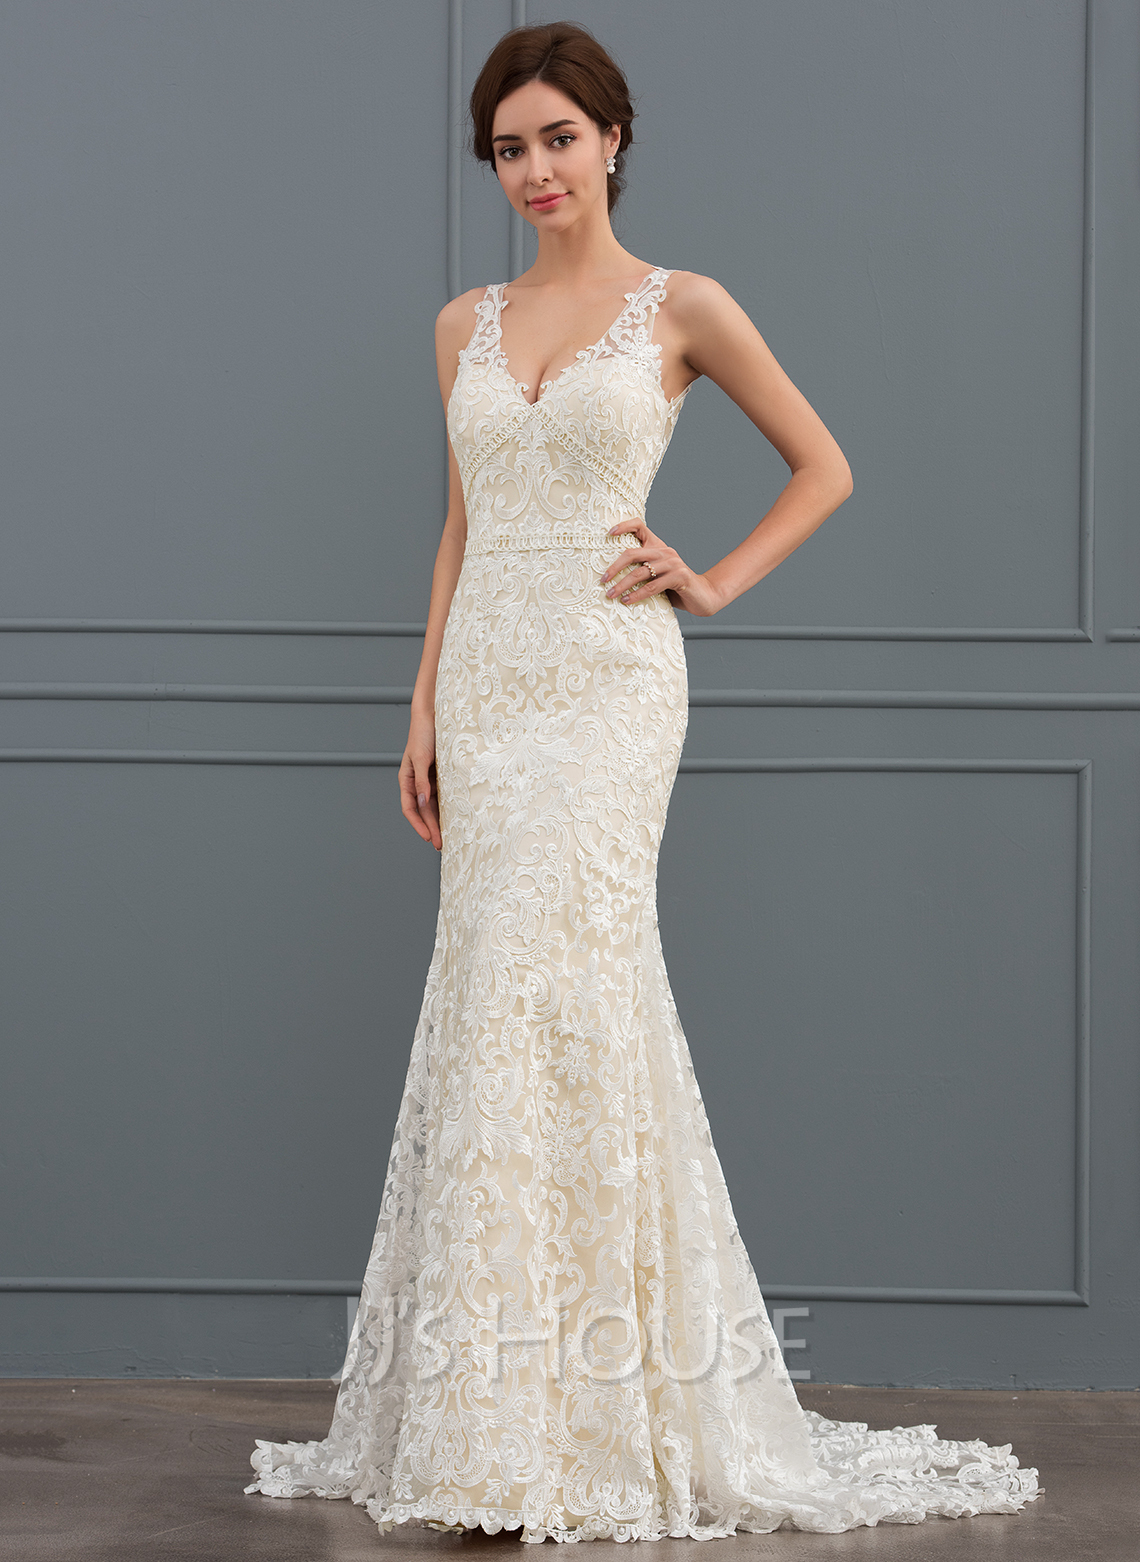 c16b2f38d47b Trumpet/Mermaid V-neck Sweep Train Lace Wedding Dress (002134401 ...